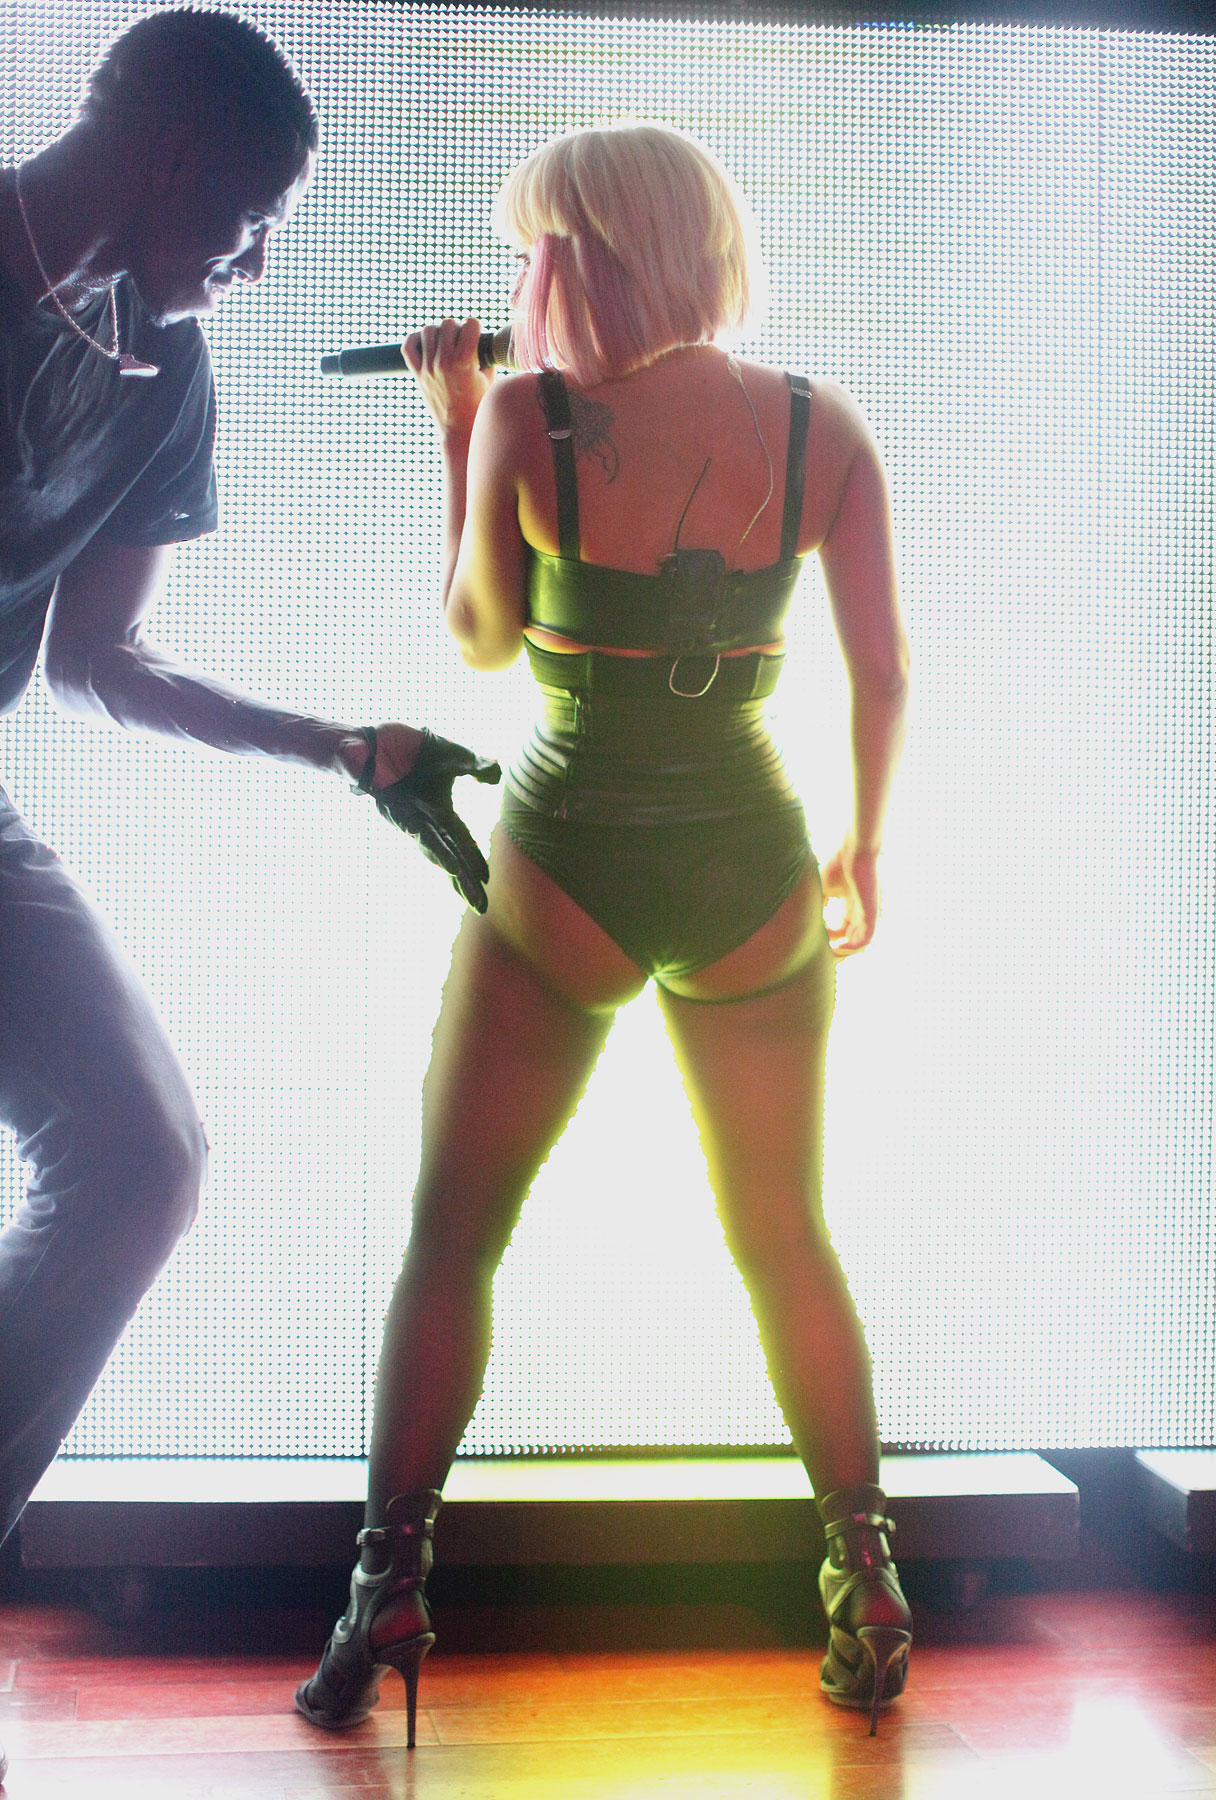 Whooty Photos http://thejamkingshow.wordpress.com/2009/04/12/lady-gaga-in-concert-whooty-2/